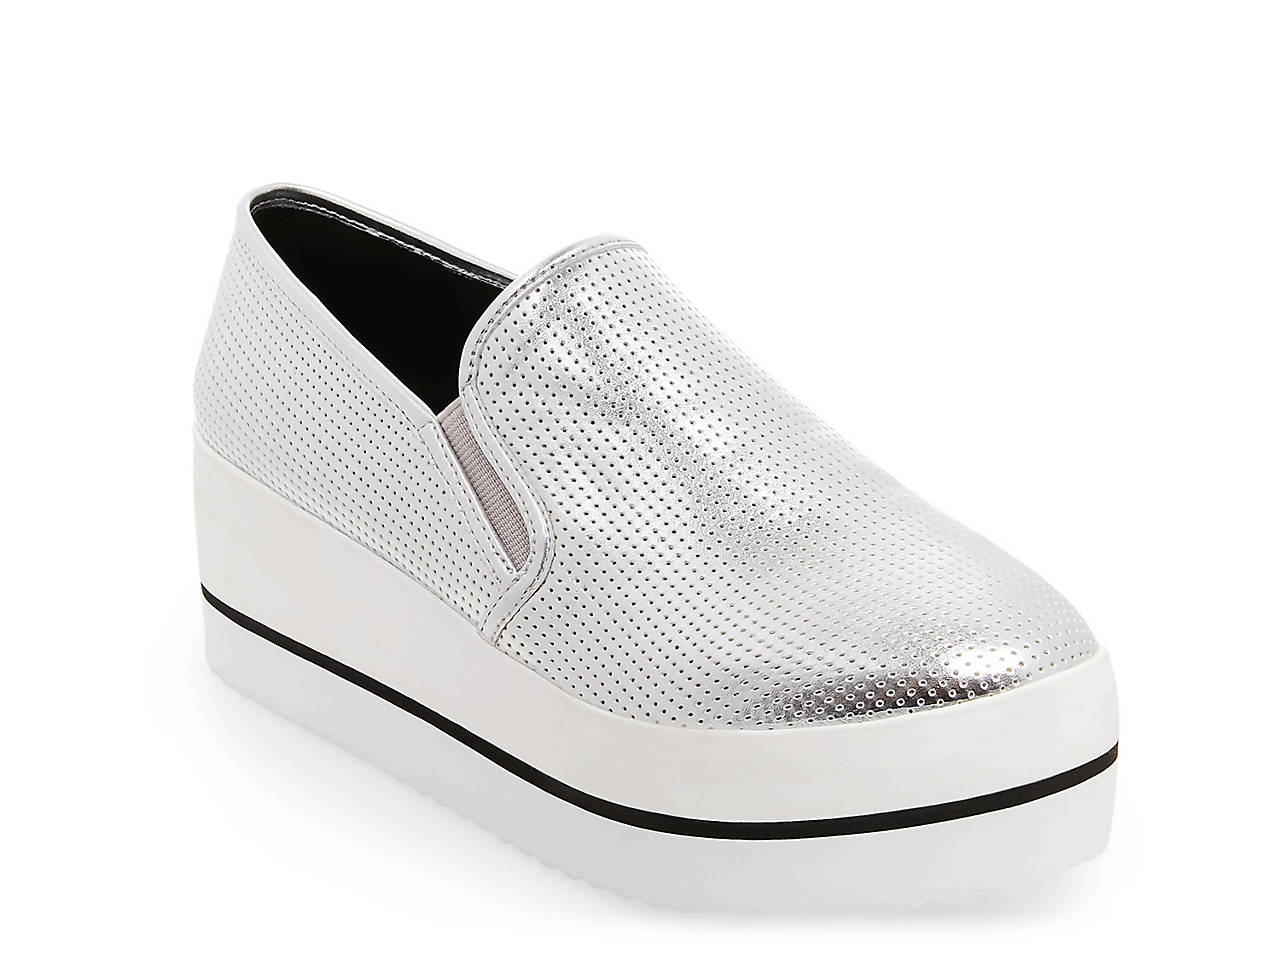 4512f6810ac Steve Madden Becca Wedge Slip-On Sneaker Women s Shoes